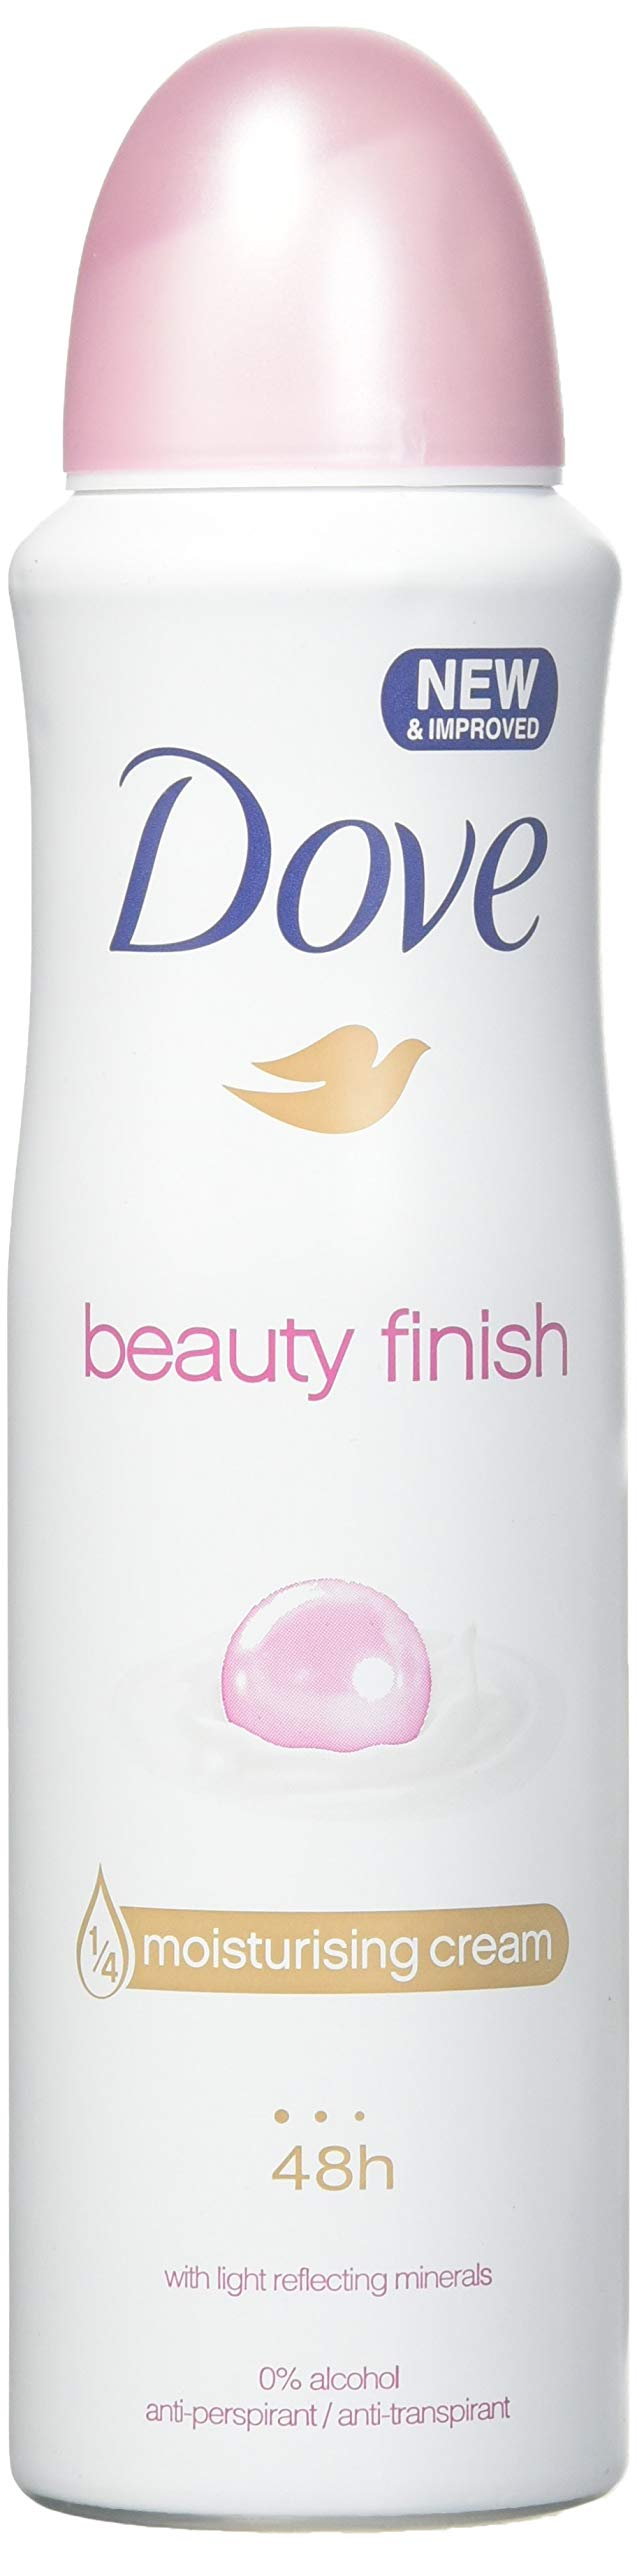 6 x Dove Beauty Finish Beauty Mineral Enriched Anti-Perspirant Deodorant 150ml